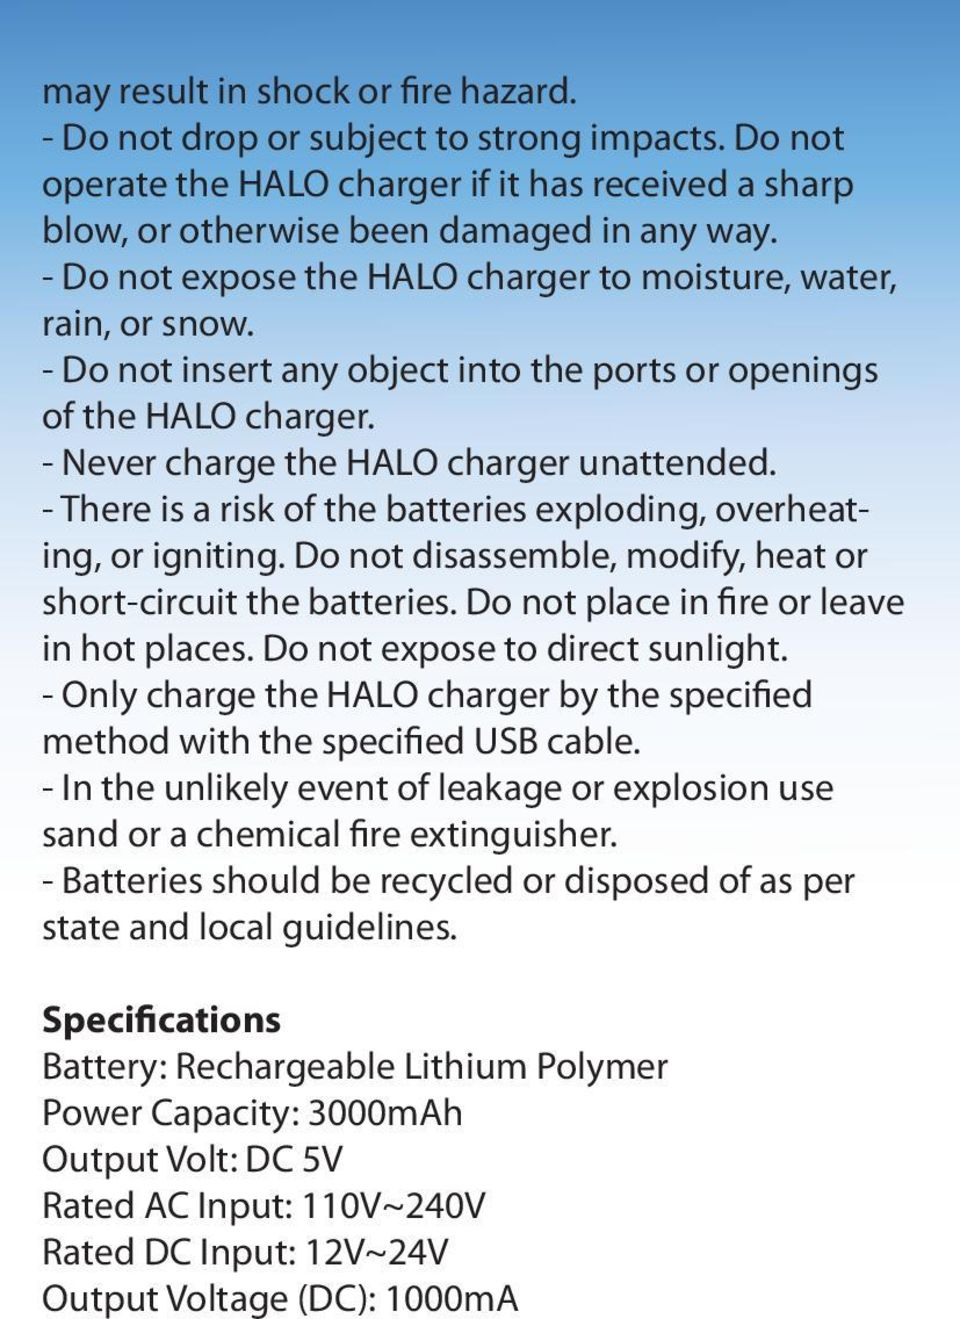 - There is a risk of the batteries exploding, overheating, or igniting. Do not disassemble, modify, heat or short-circuit the batteries. Do not place in fire or leave in hot places.